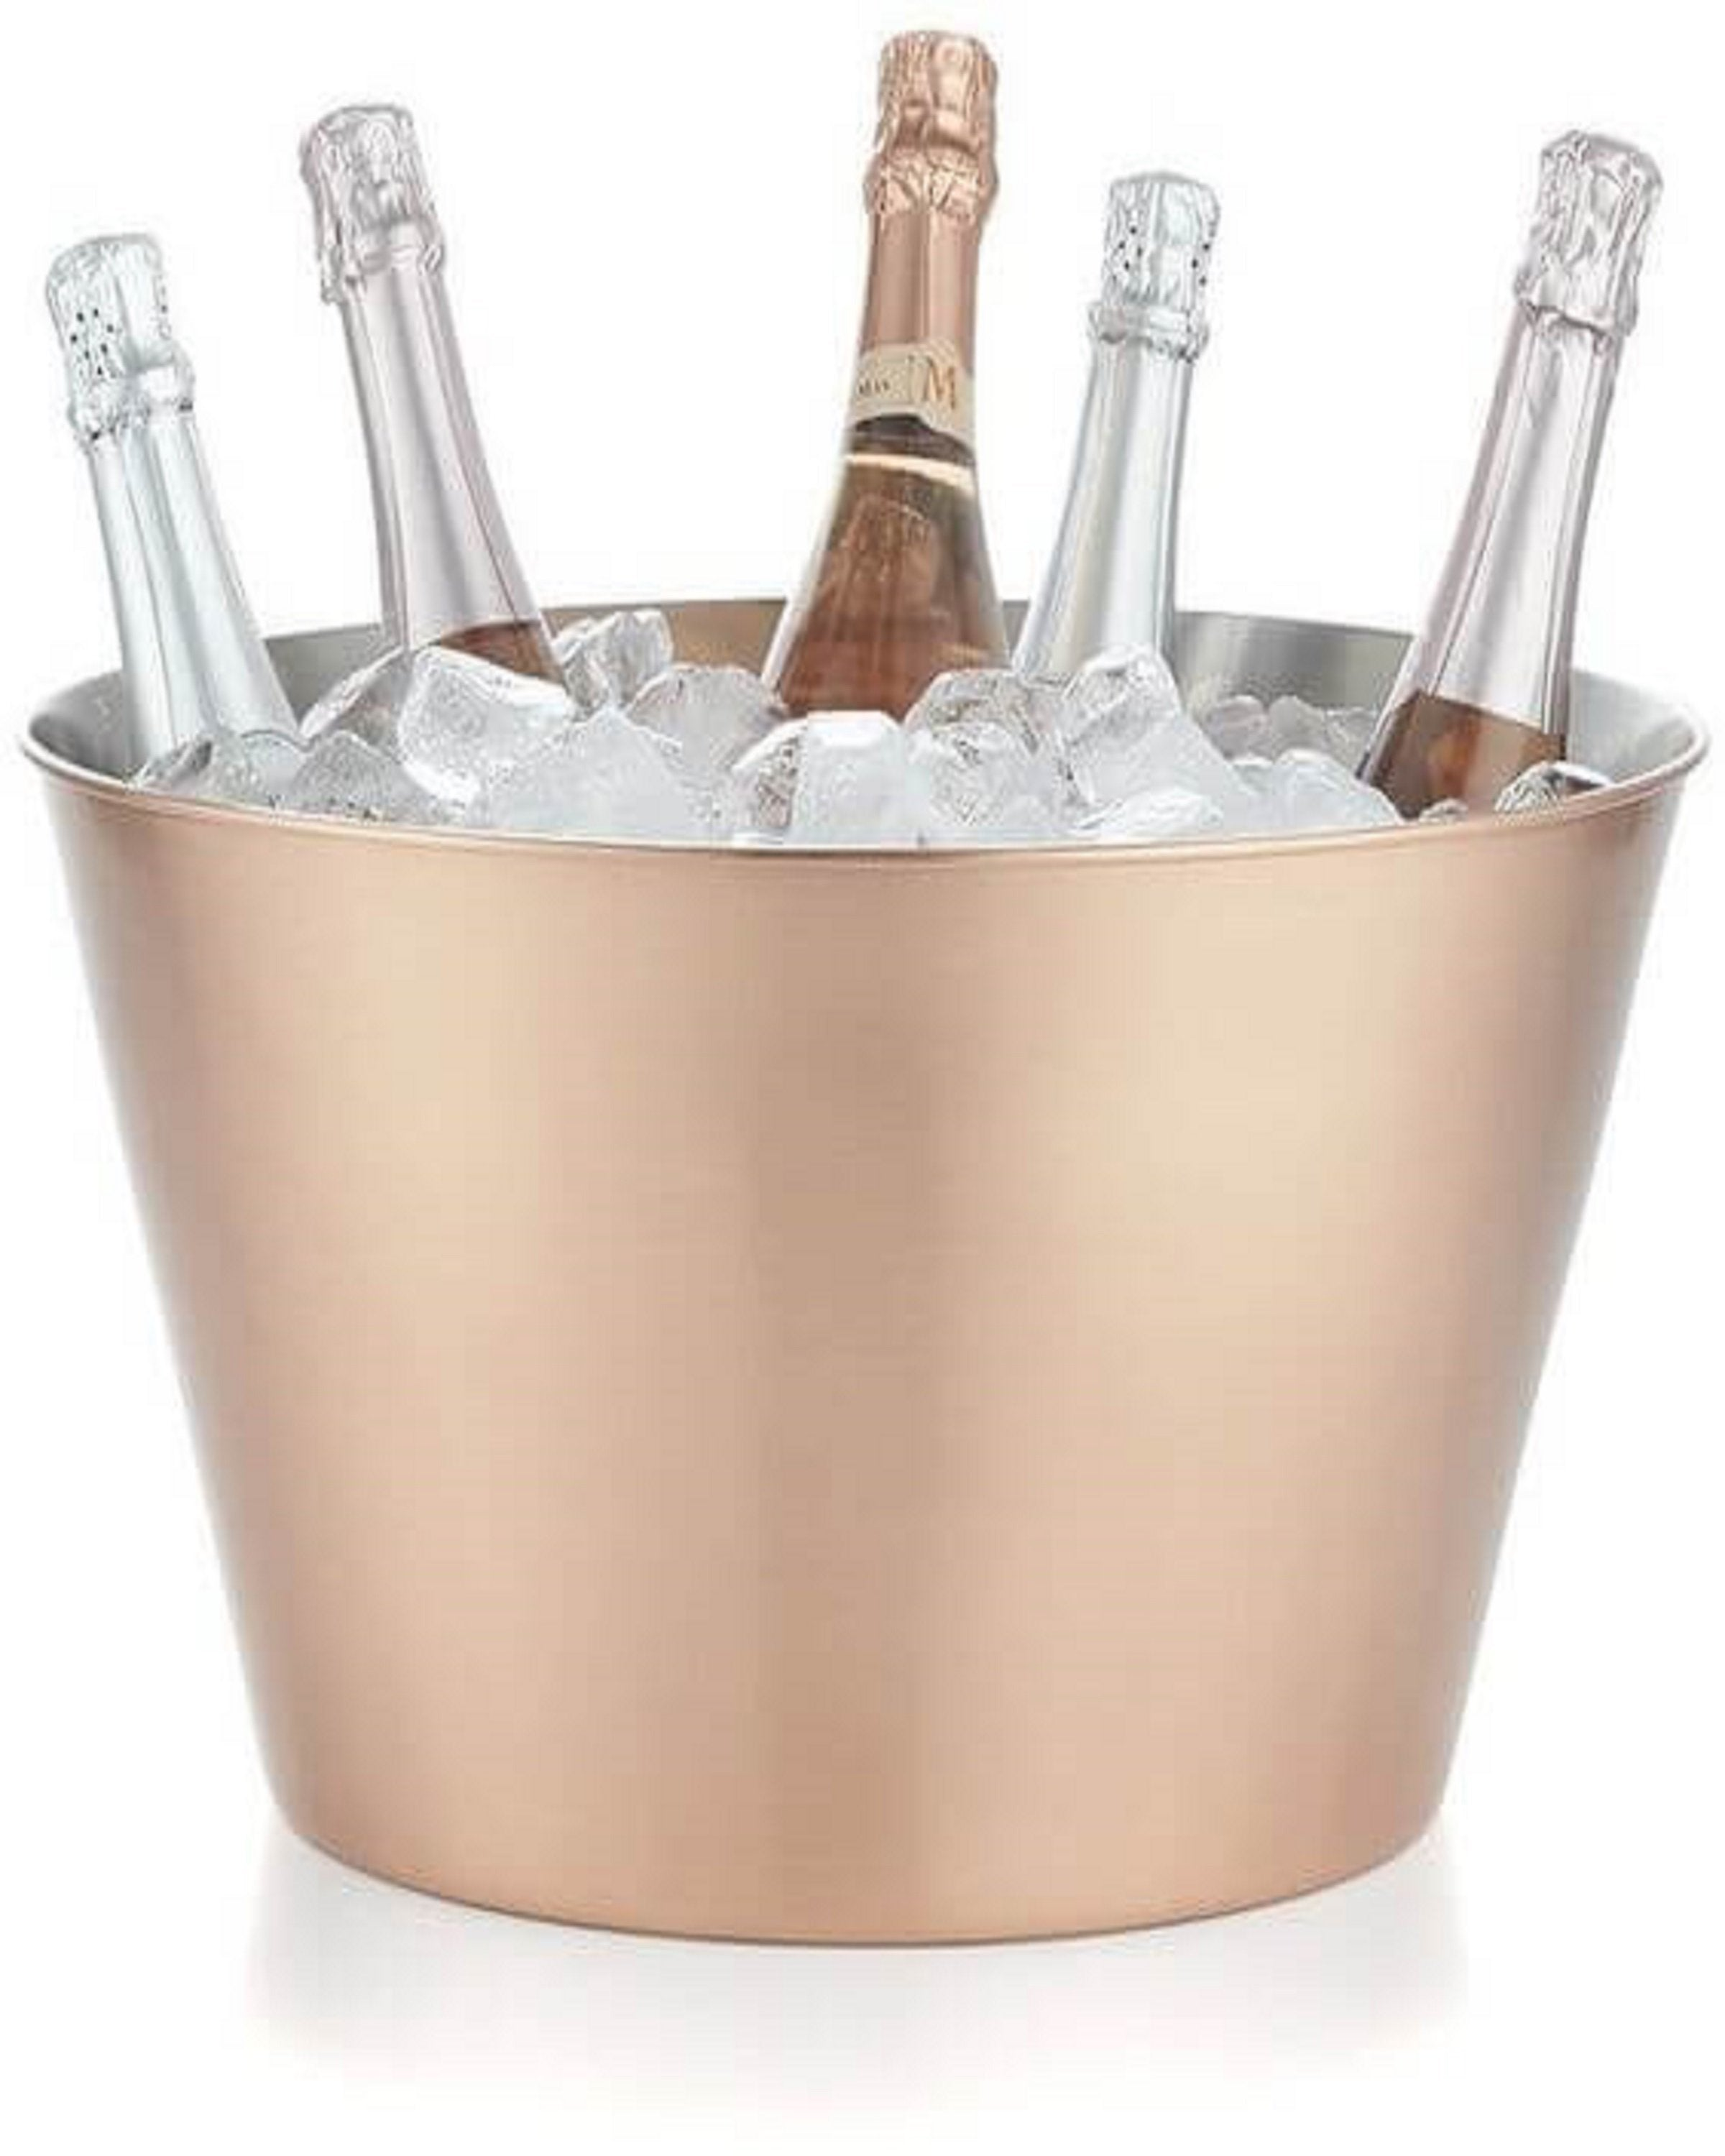 Caleb golden ice bucket ANGIE HOMES